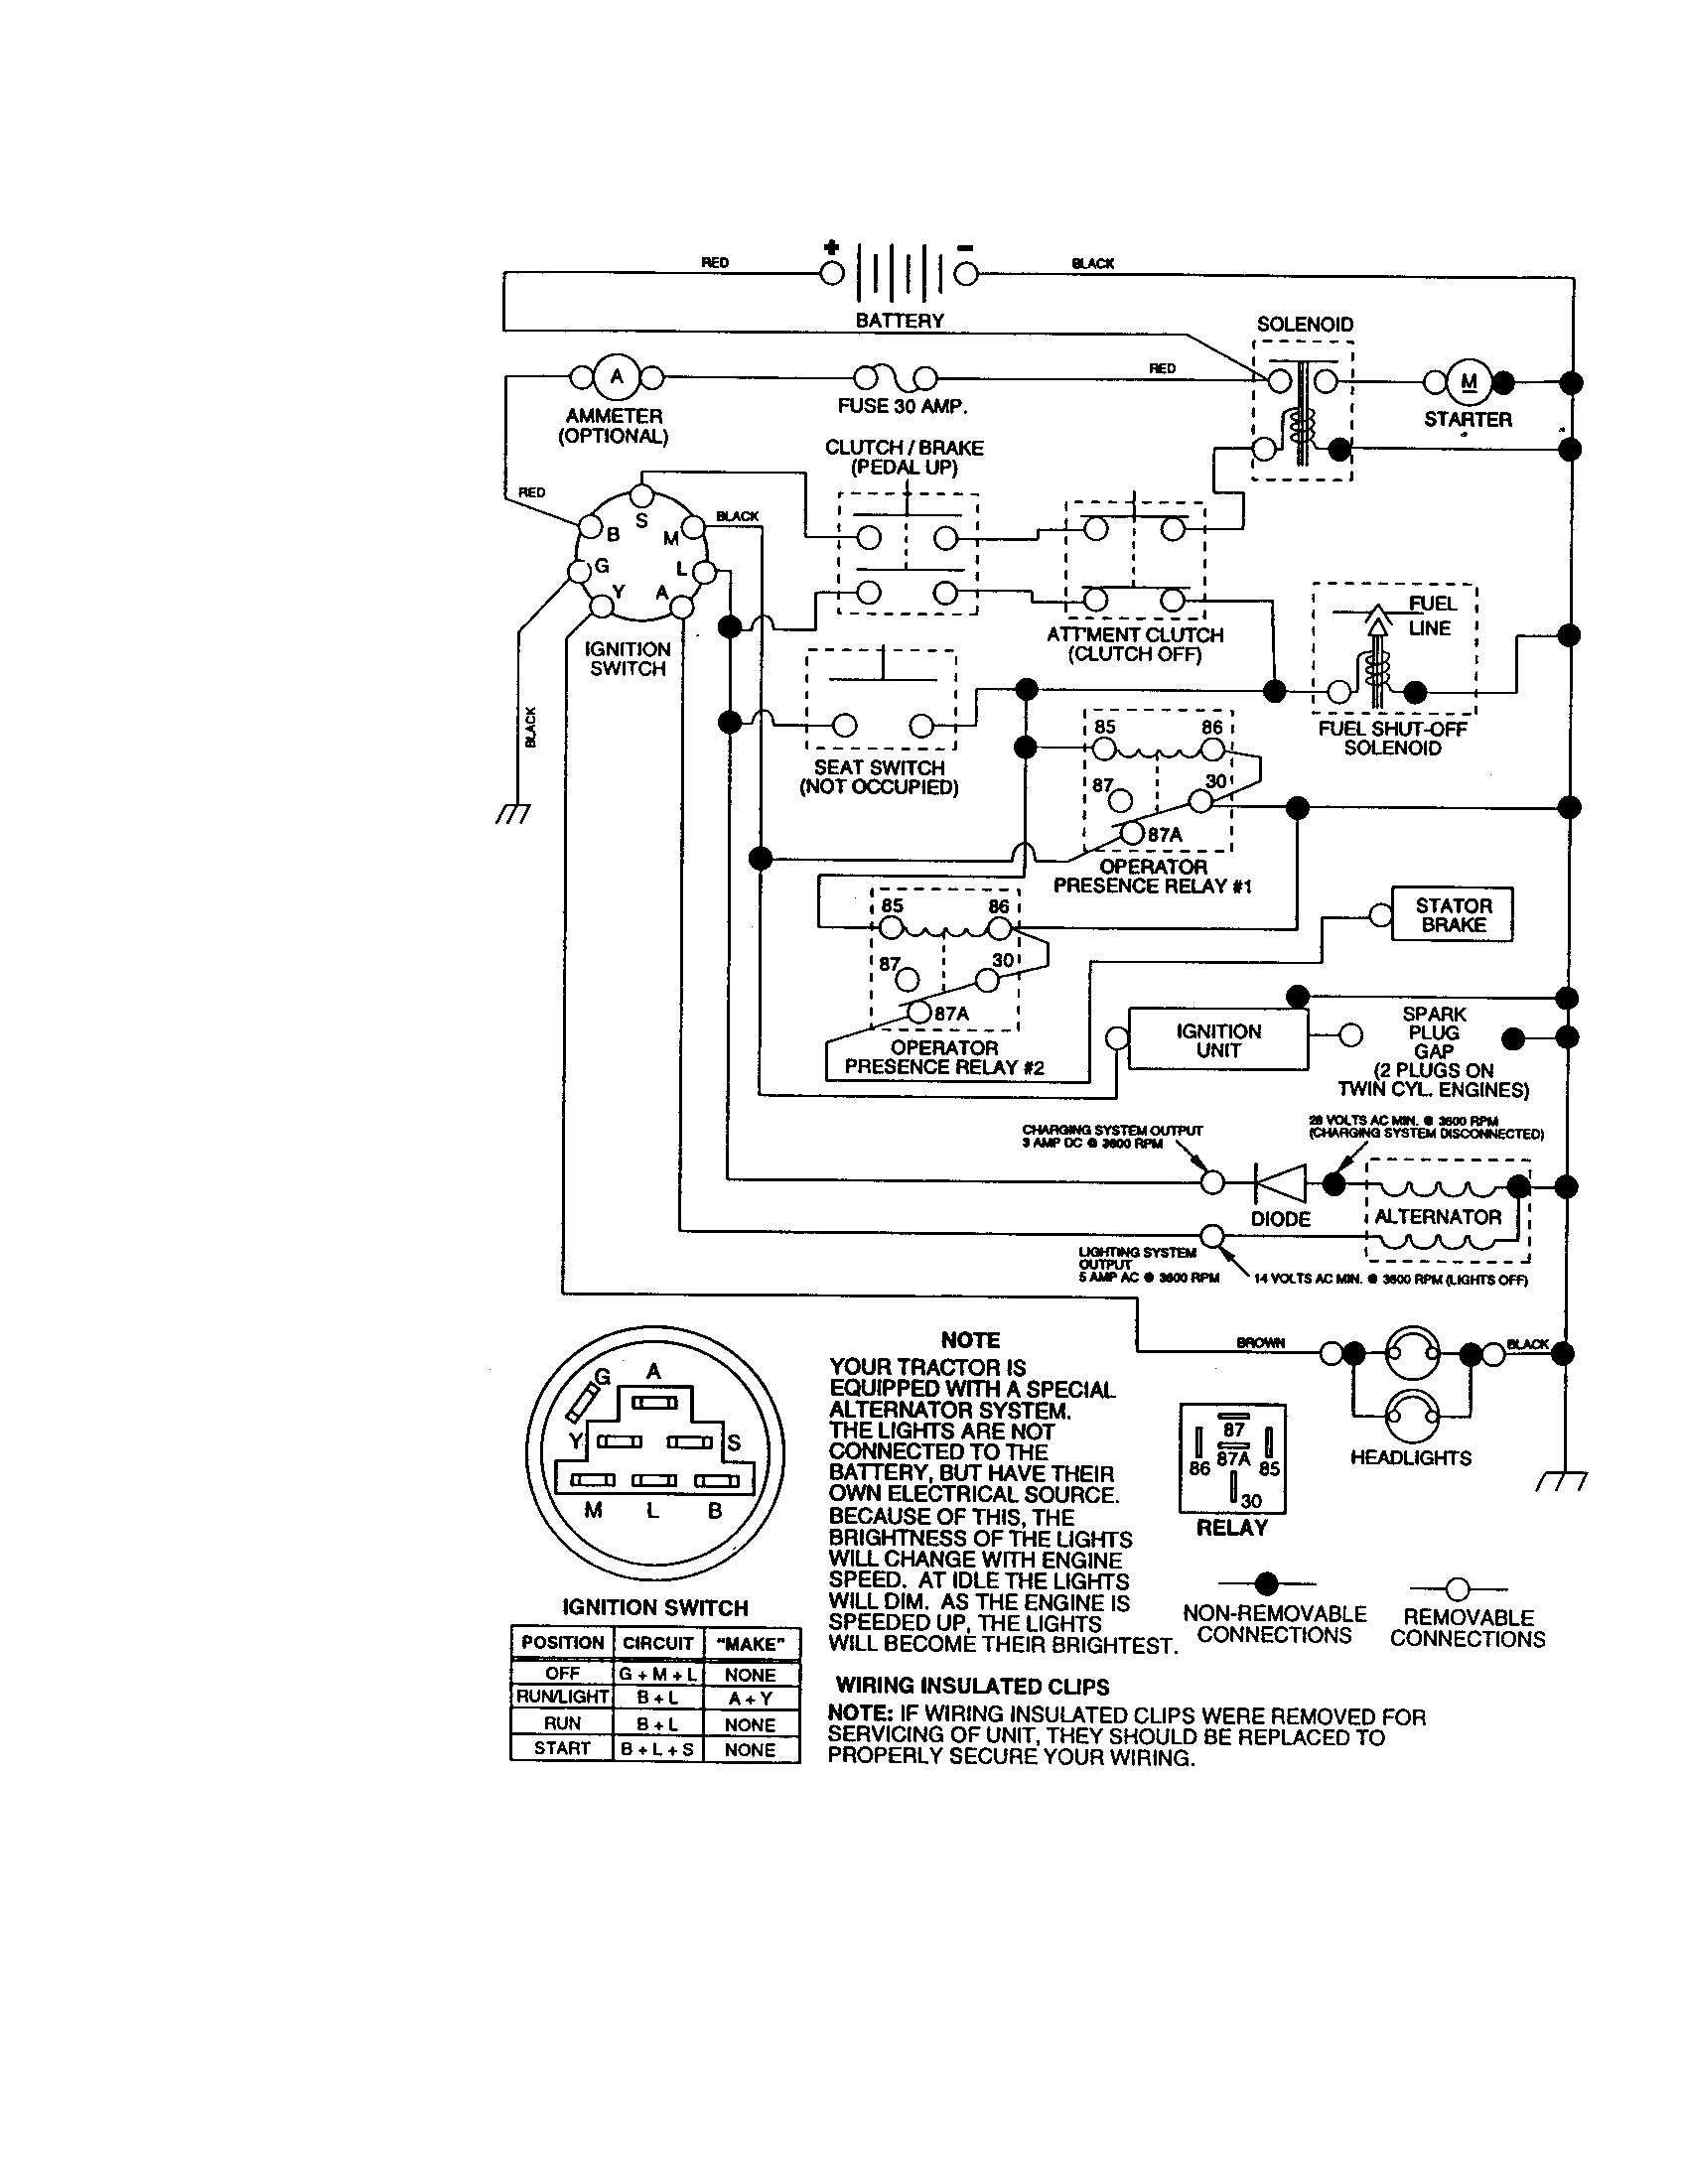 Wiring Diagram for Lze730gka604a3 Lawnmower Craftsman Lawn Mower Model 917 Wiring Diagram Of Wiring Diagram for Lze730gka604a3 Lawnmower